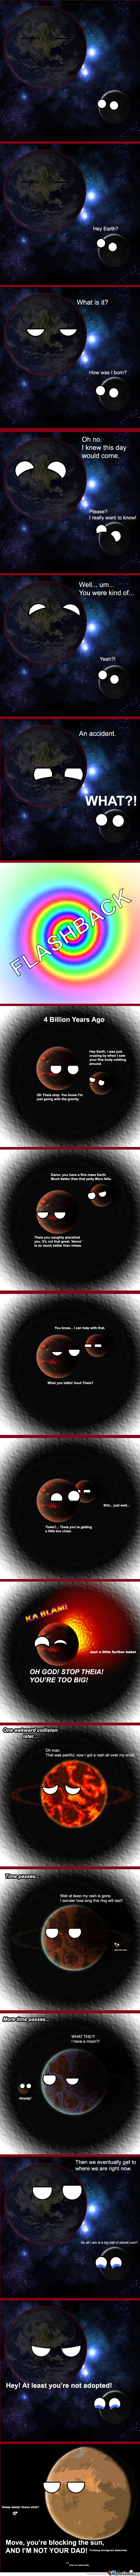 How The Moon Was Born